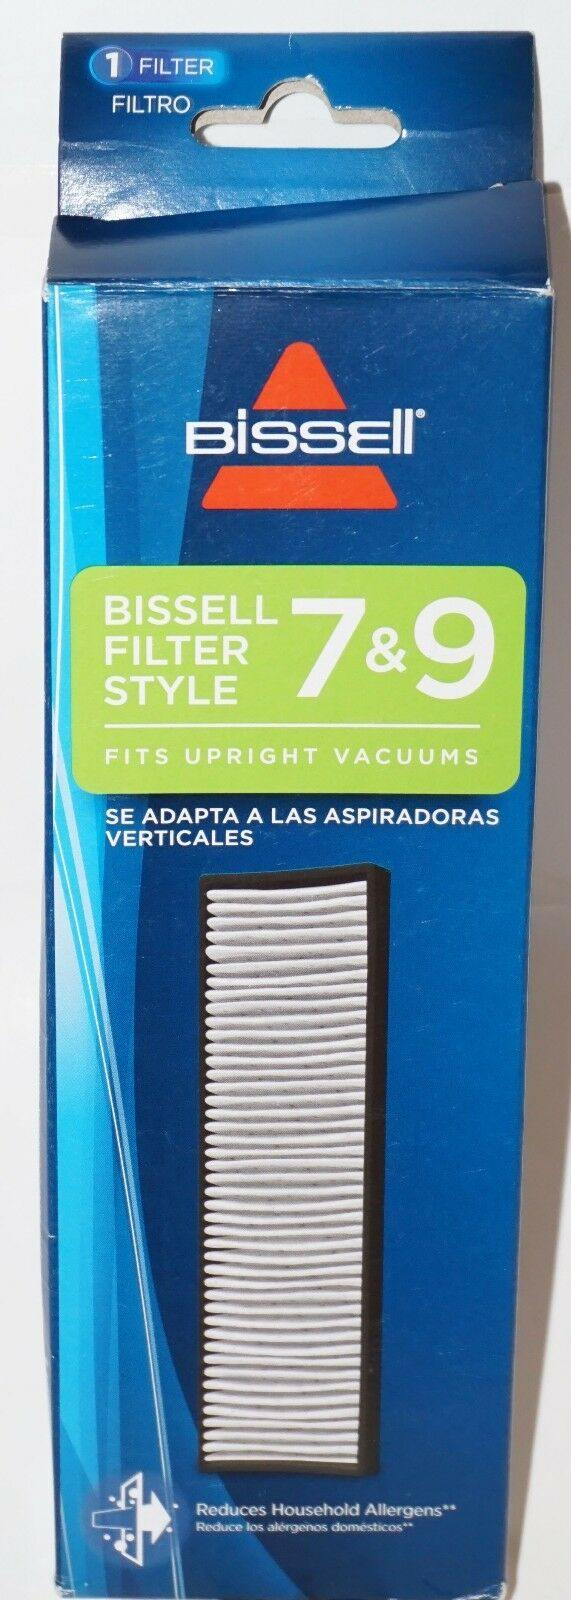 BISSELL FILTER 7 & 9 - FITS UPRIGHT VACUUMS REDUCE ALLERGEN MODEL 1908 NEW - EZ Monster Deals